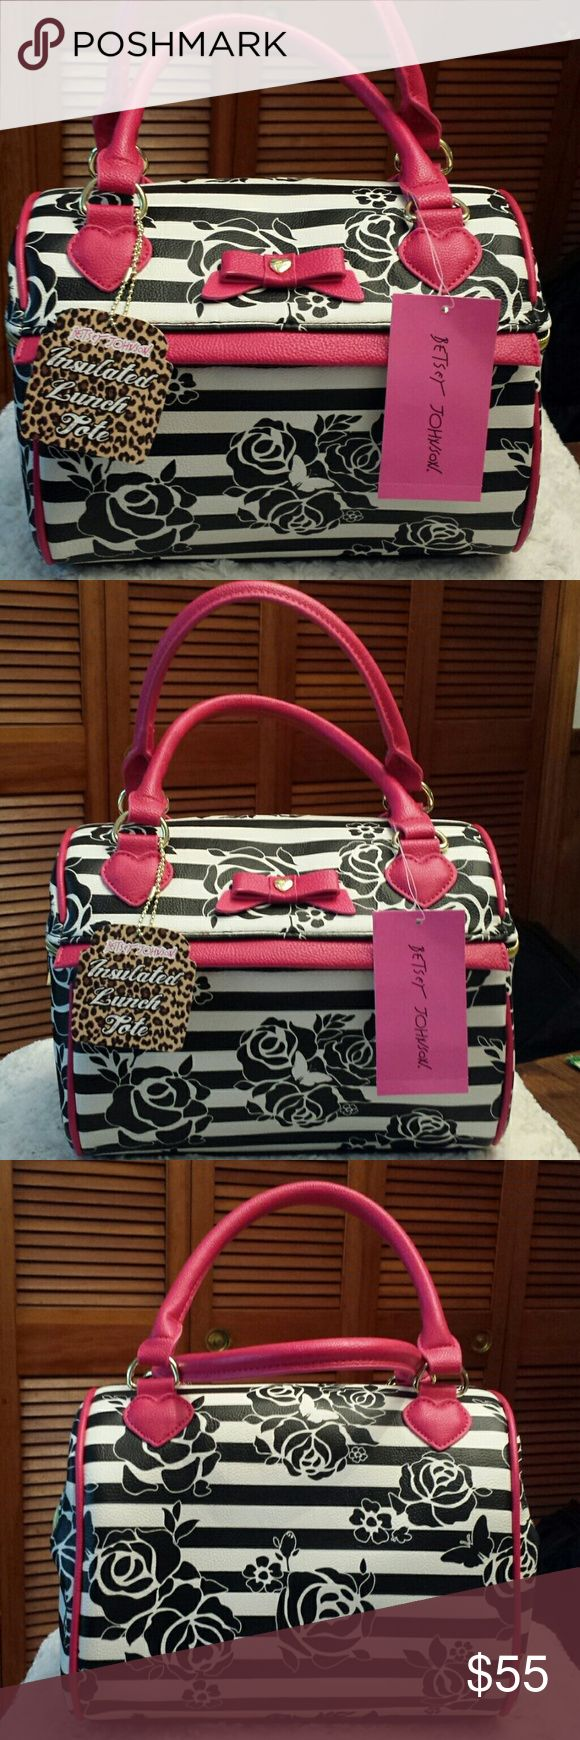 Betsy Johnson NWT Speedy Lunch Black Rose Tote Betsy Johnson NWT Black and White and Pink Rose Print Insulated Speedy Lunch Tote, Top Handle and Zippered Closure Betsy Johnson  Bags Totes